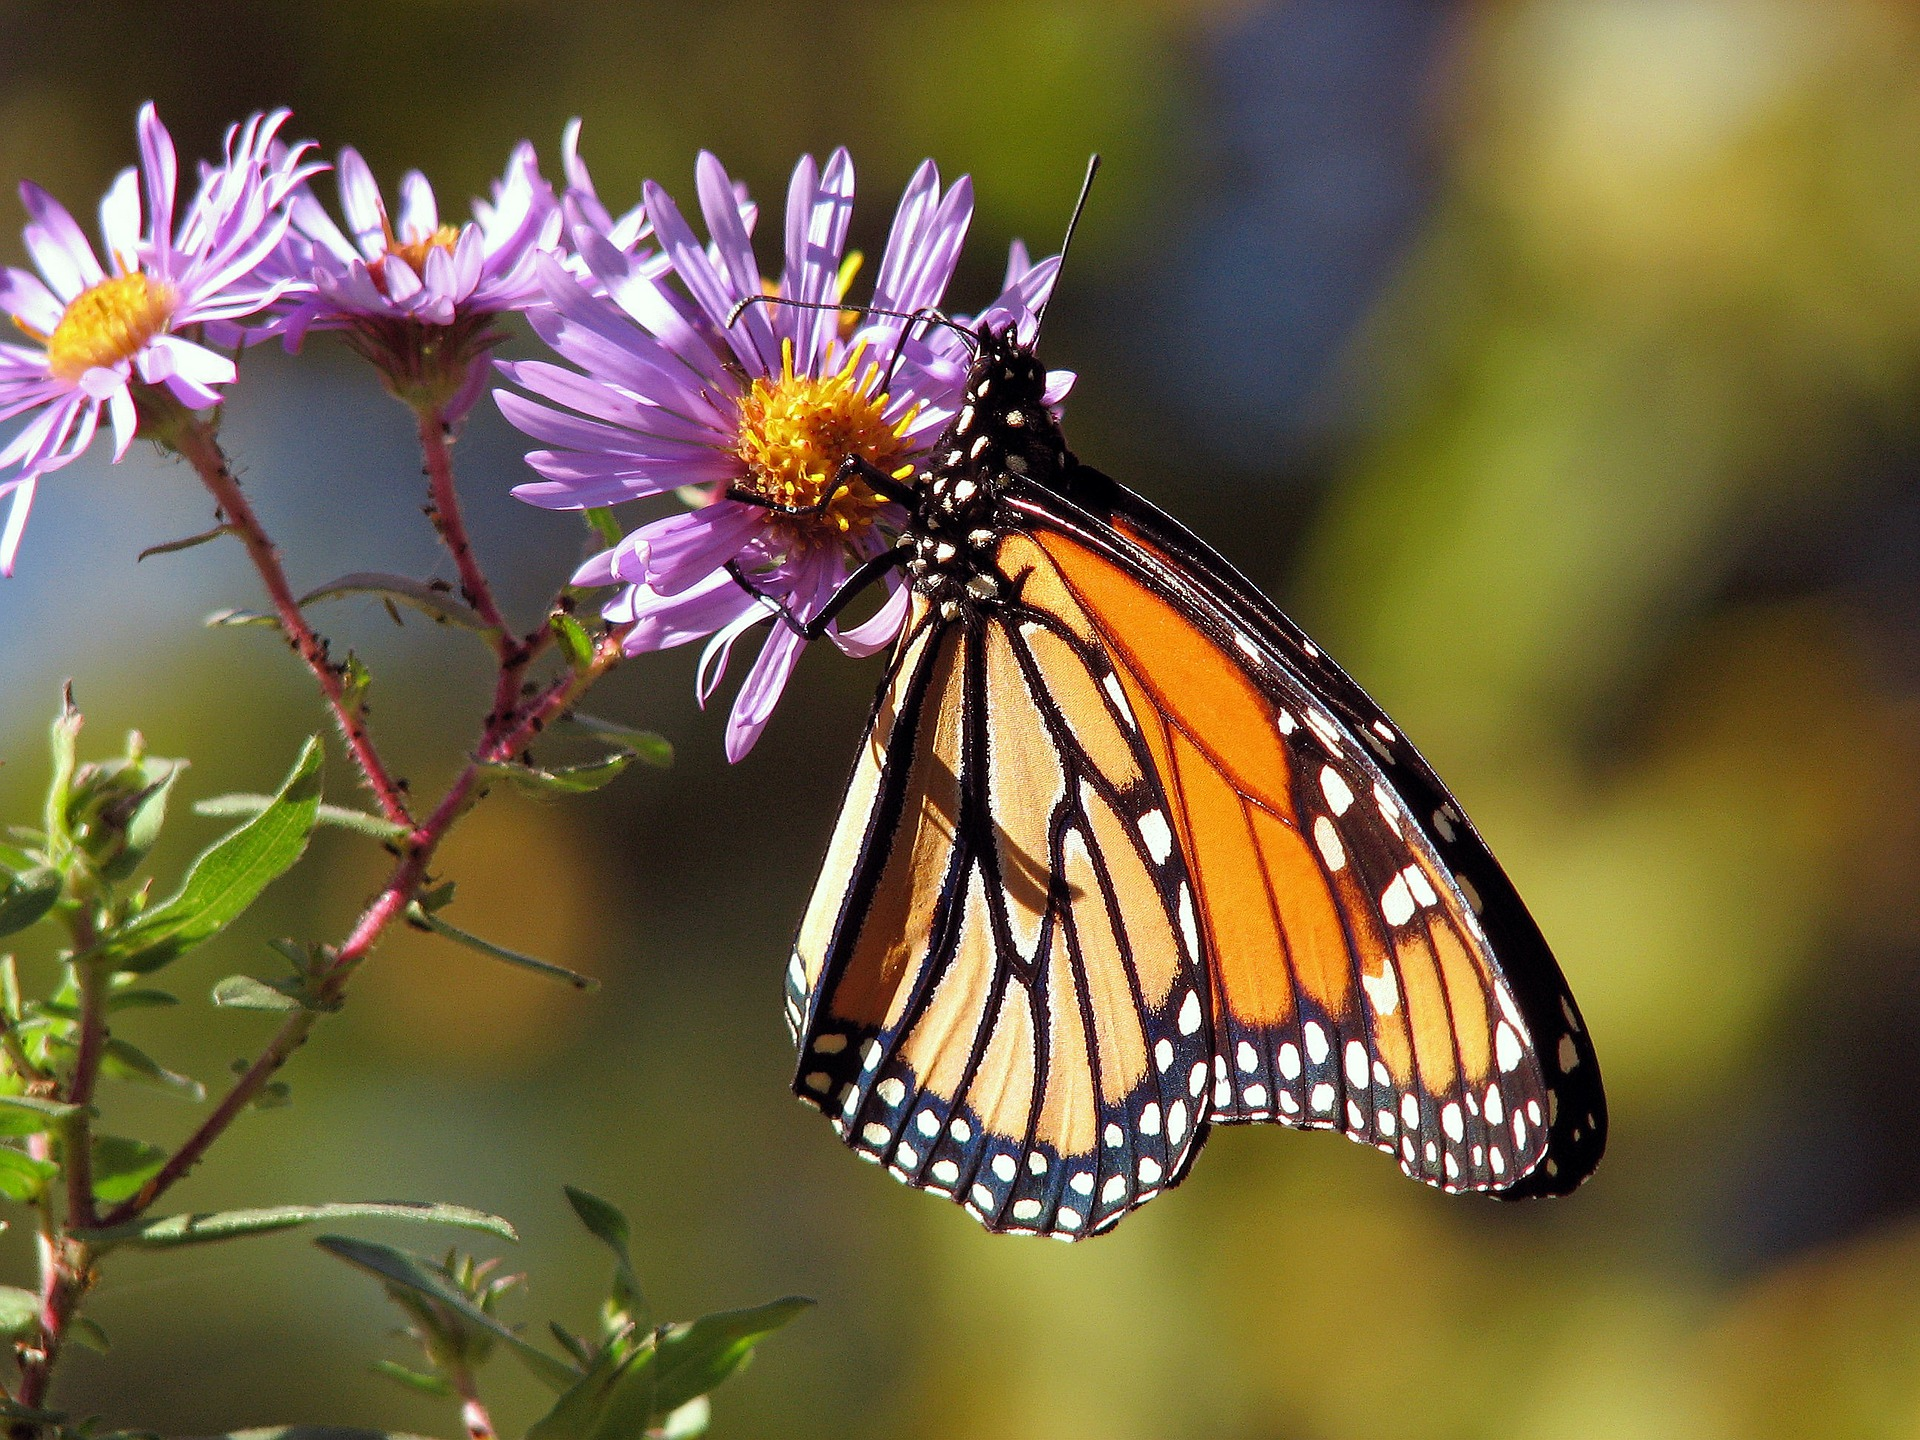 A butterfly on a flower, so pleasing to our eyes.